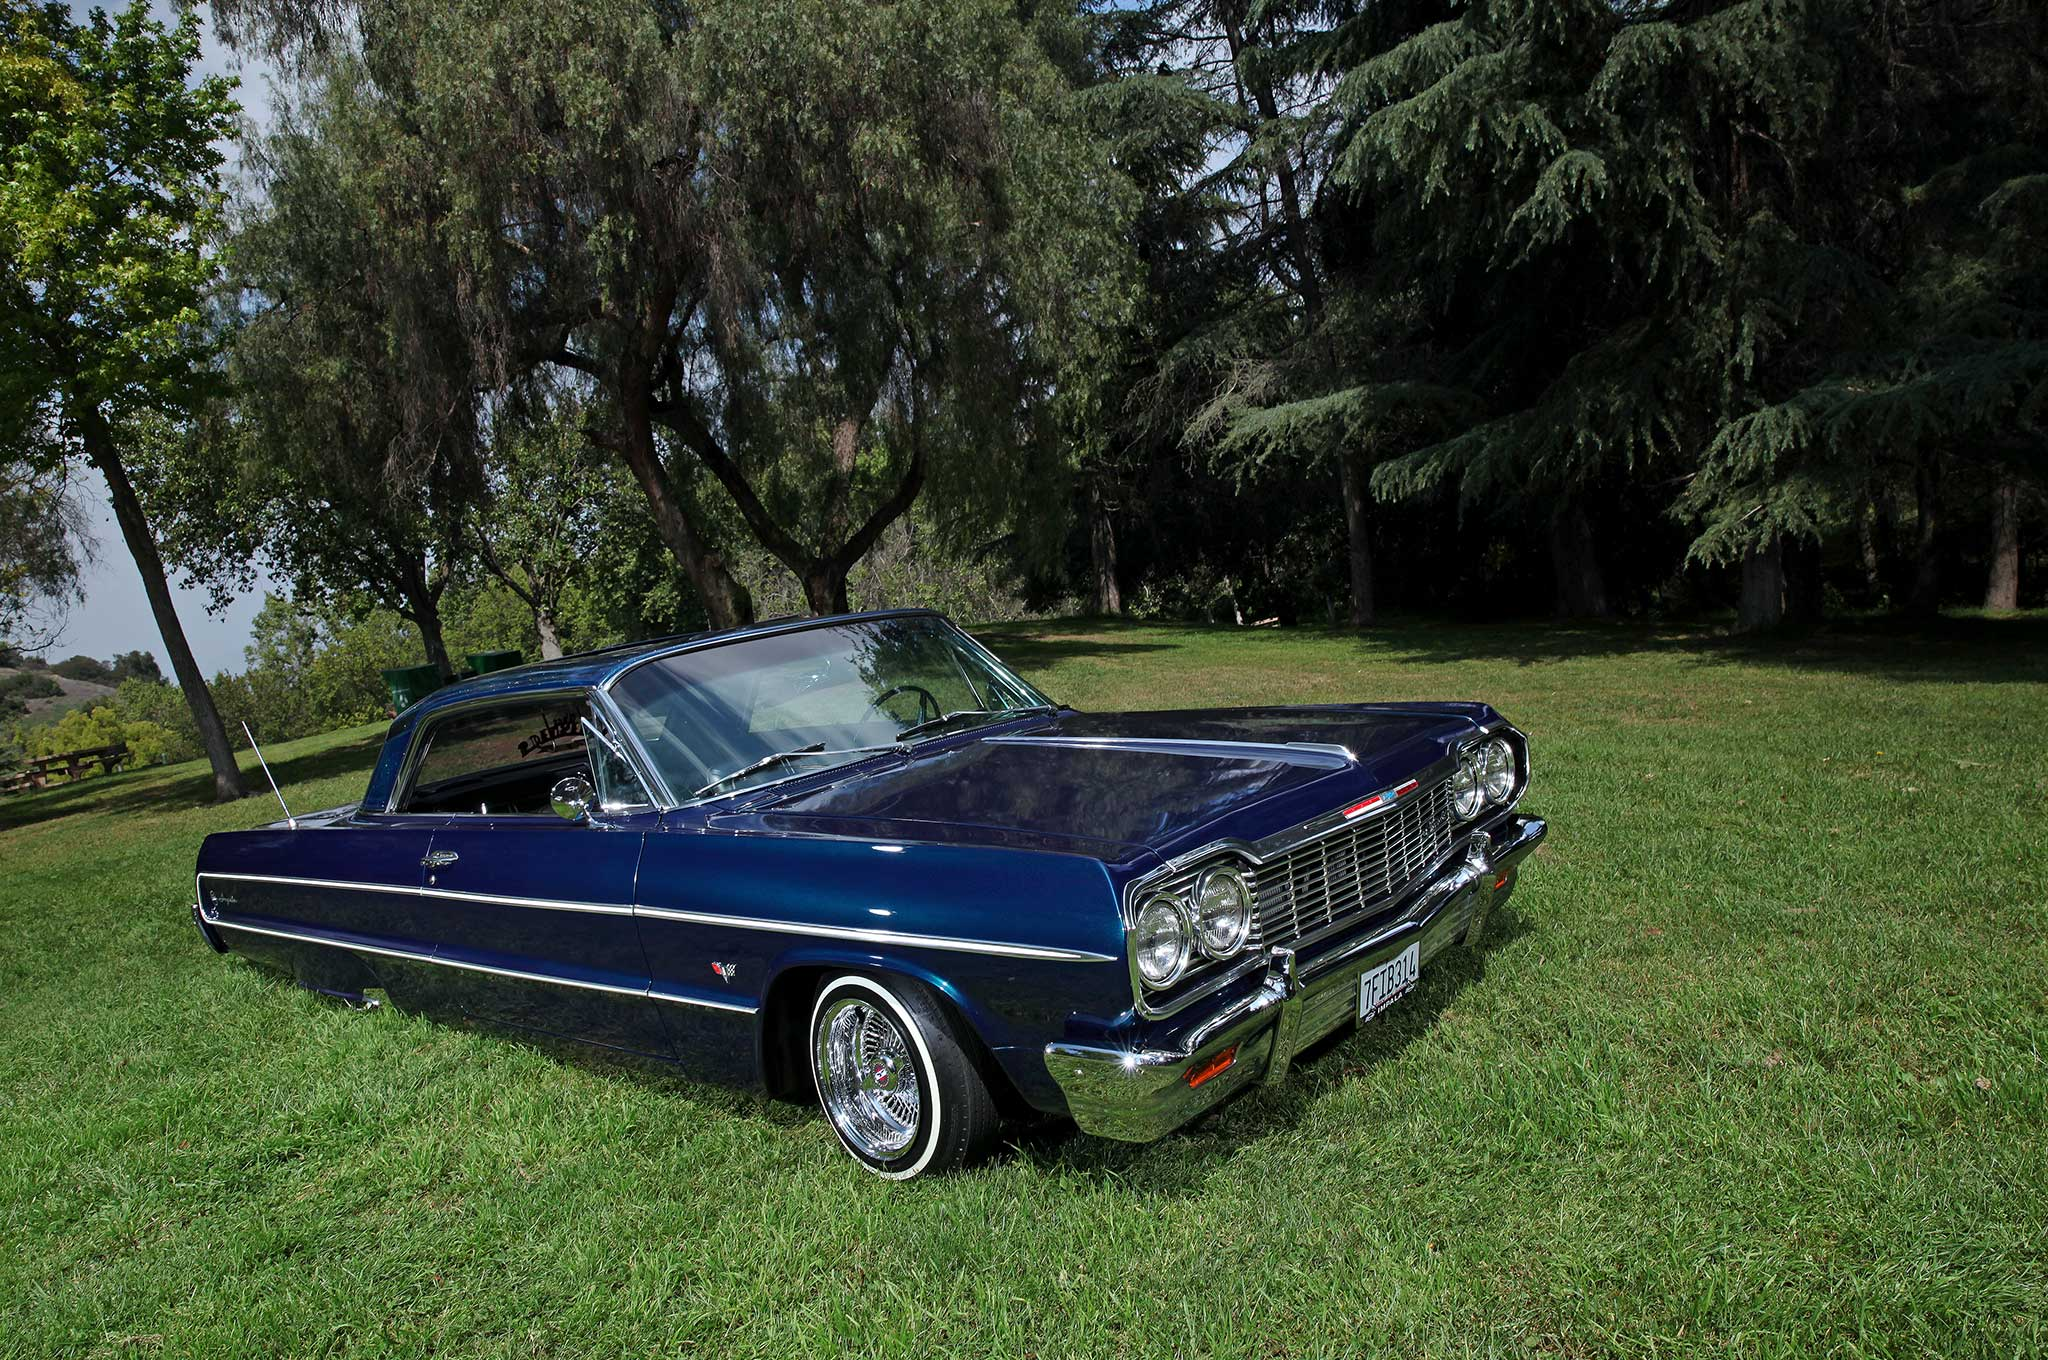 The Long Journey of a '64 Chevy Impala